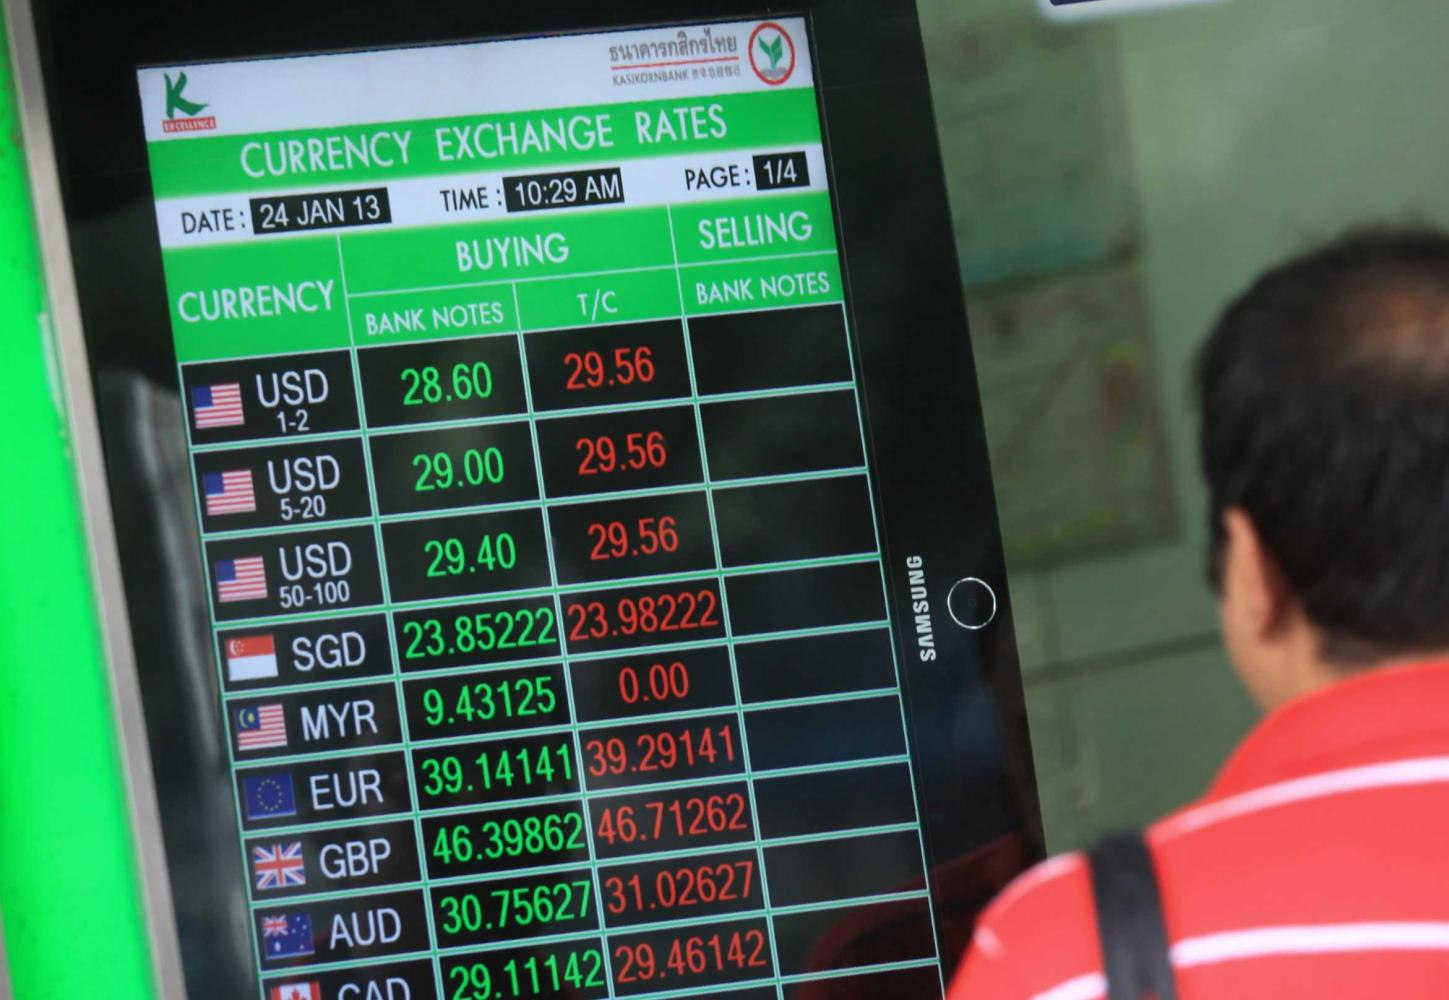 A man looks at a KBank foreign exchange board in Bangkok. The bank says the baht could strengthen to 29.25 to the US dollar by the end of 2020. Patipat Janthong